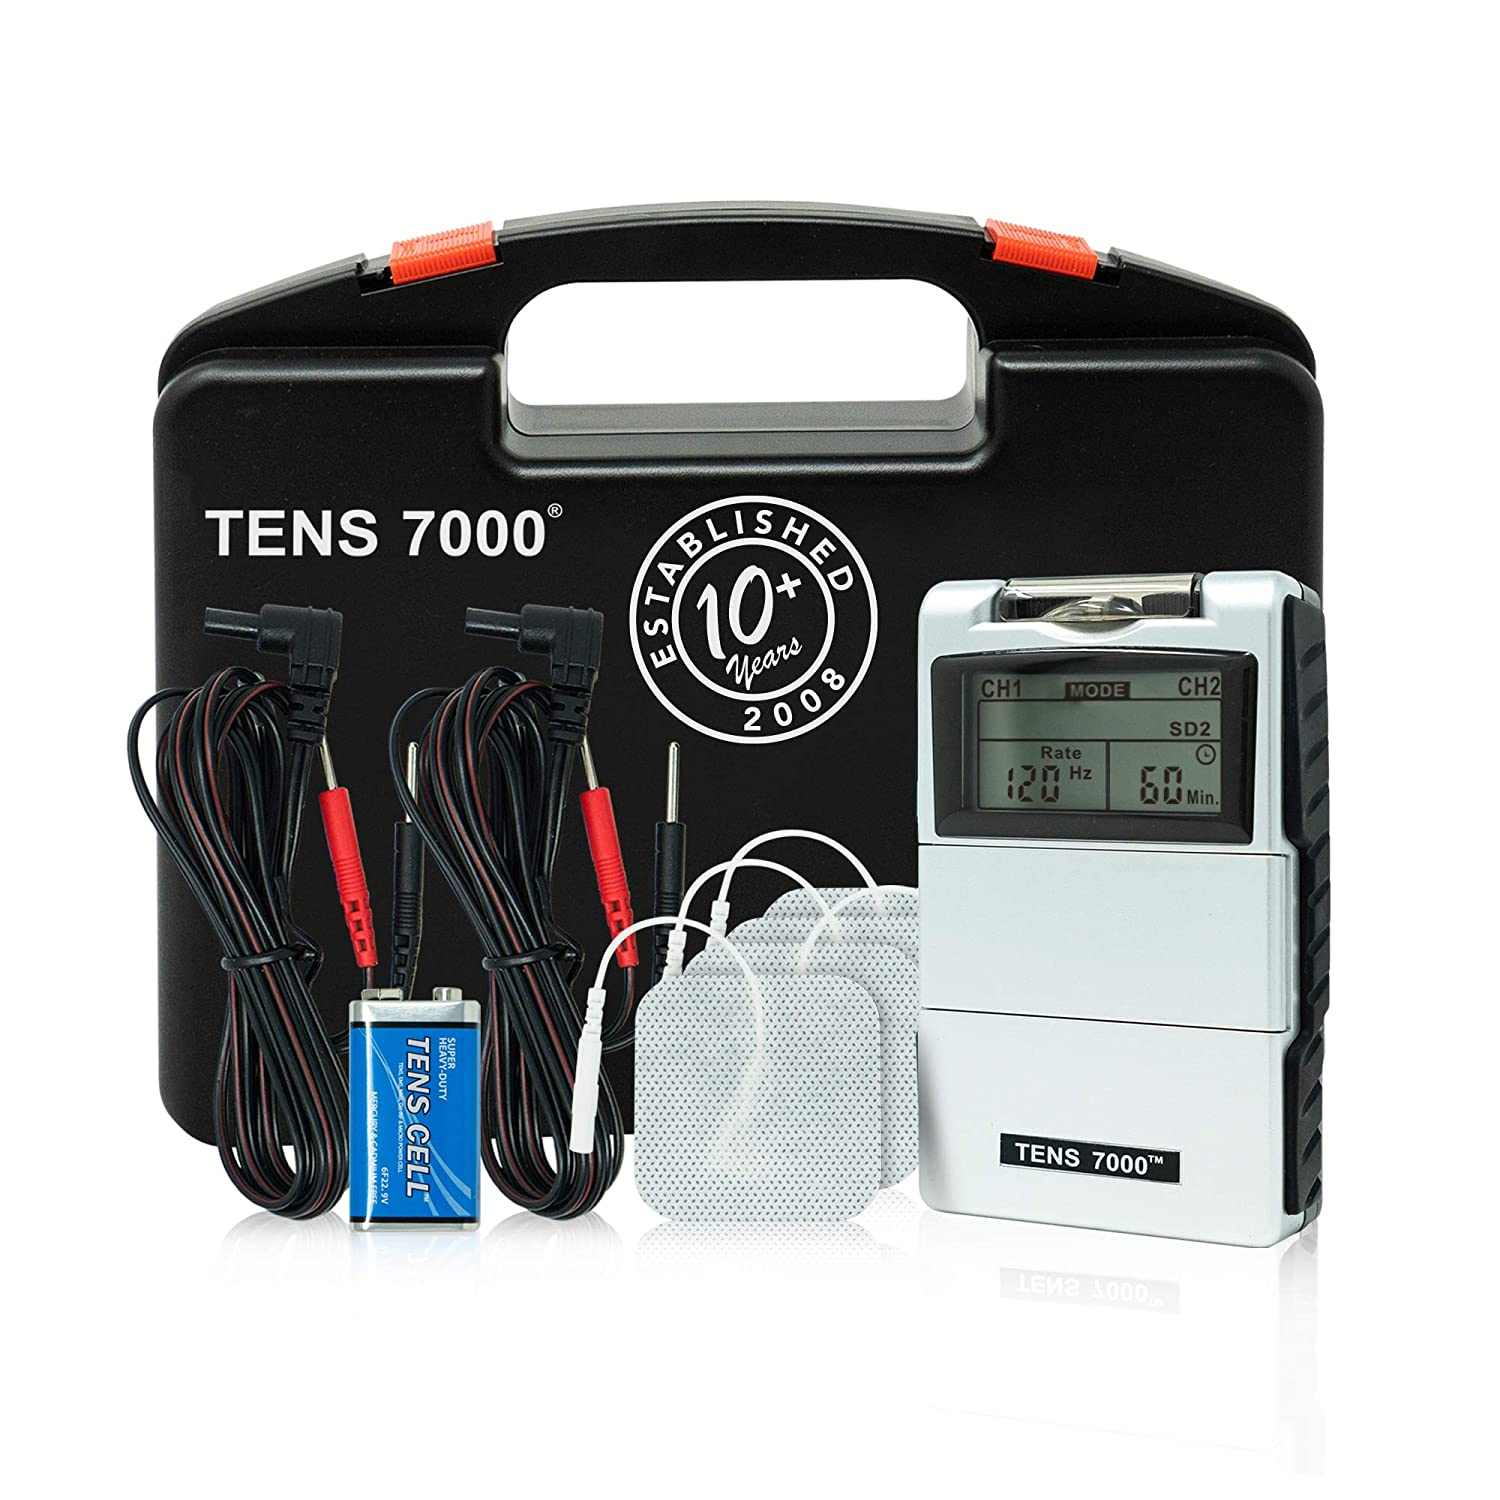 TENS 7000 2nd Edition Digital TENS Unit with Accessories: Industrial & Scientific